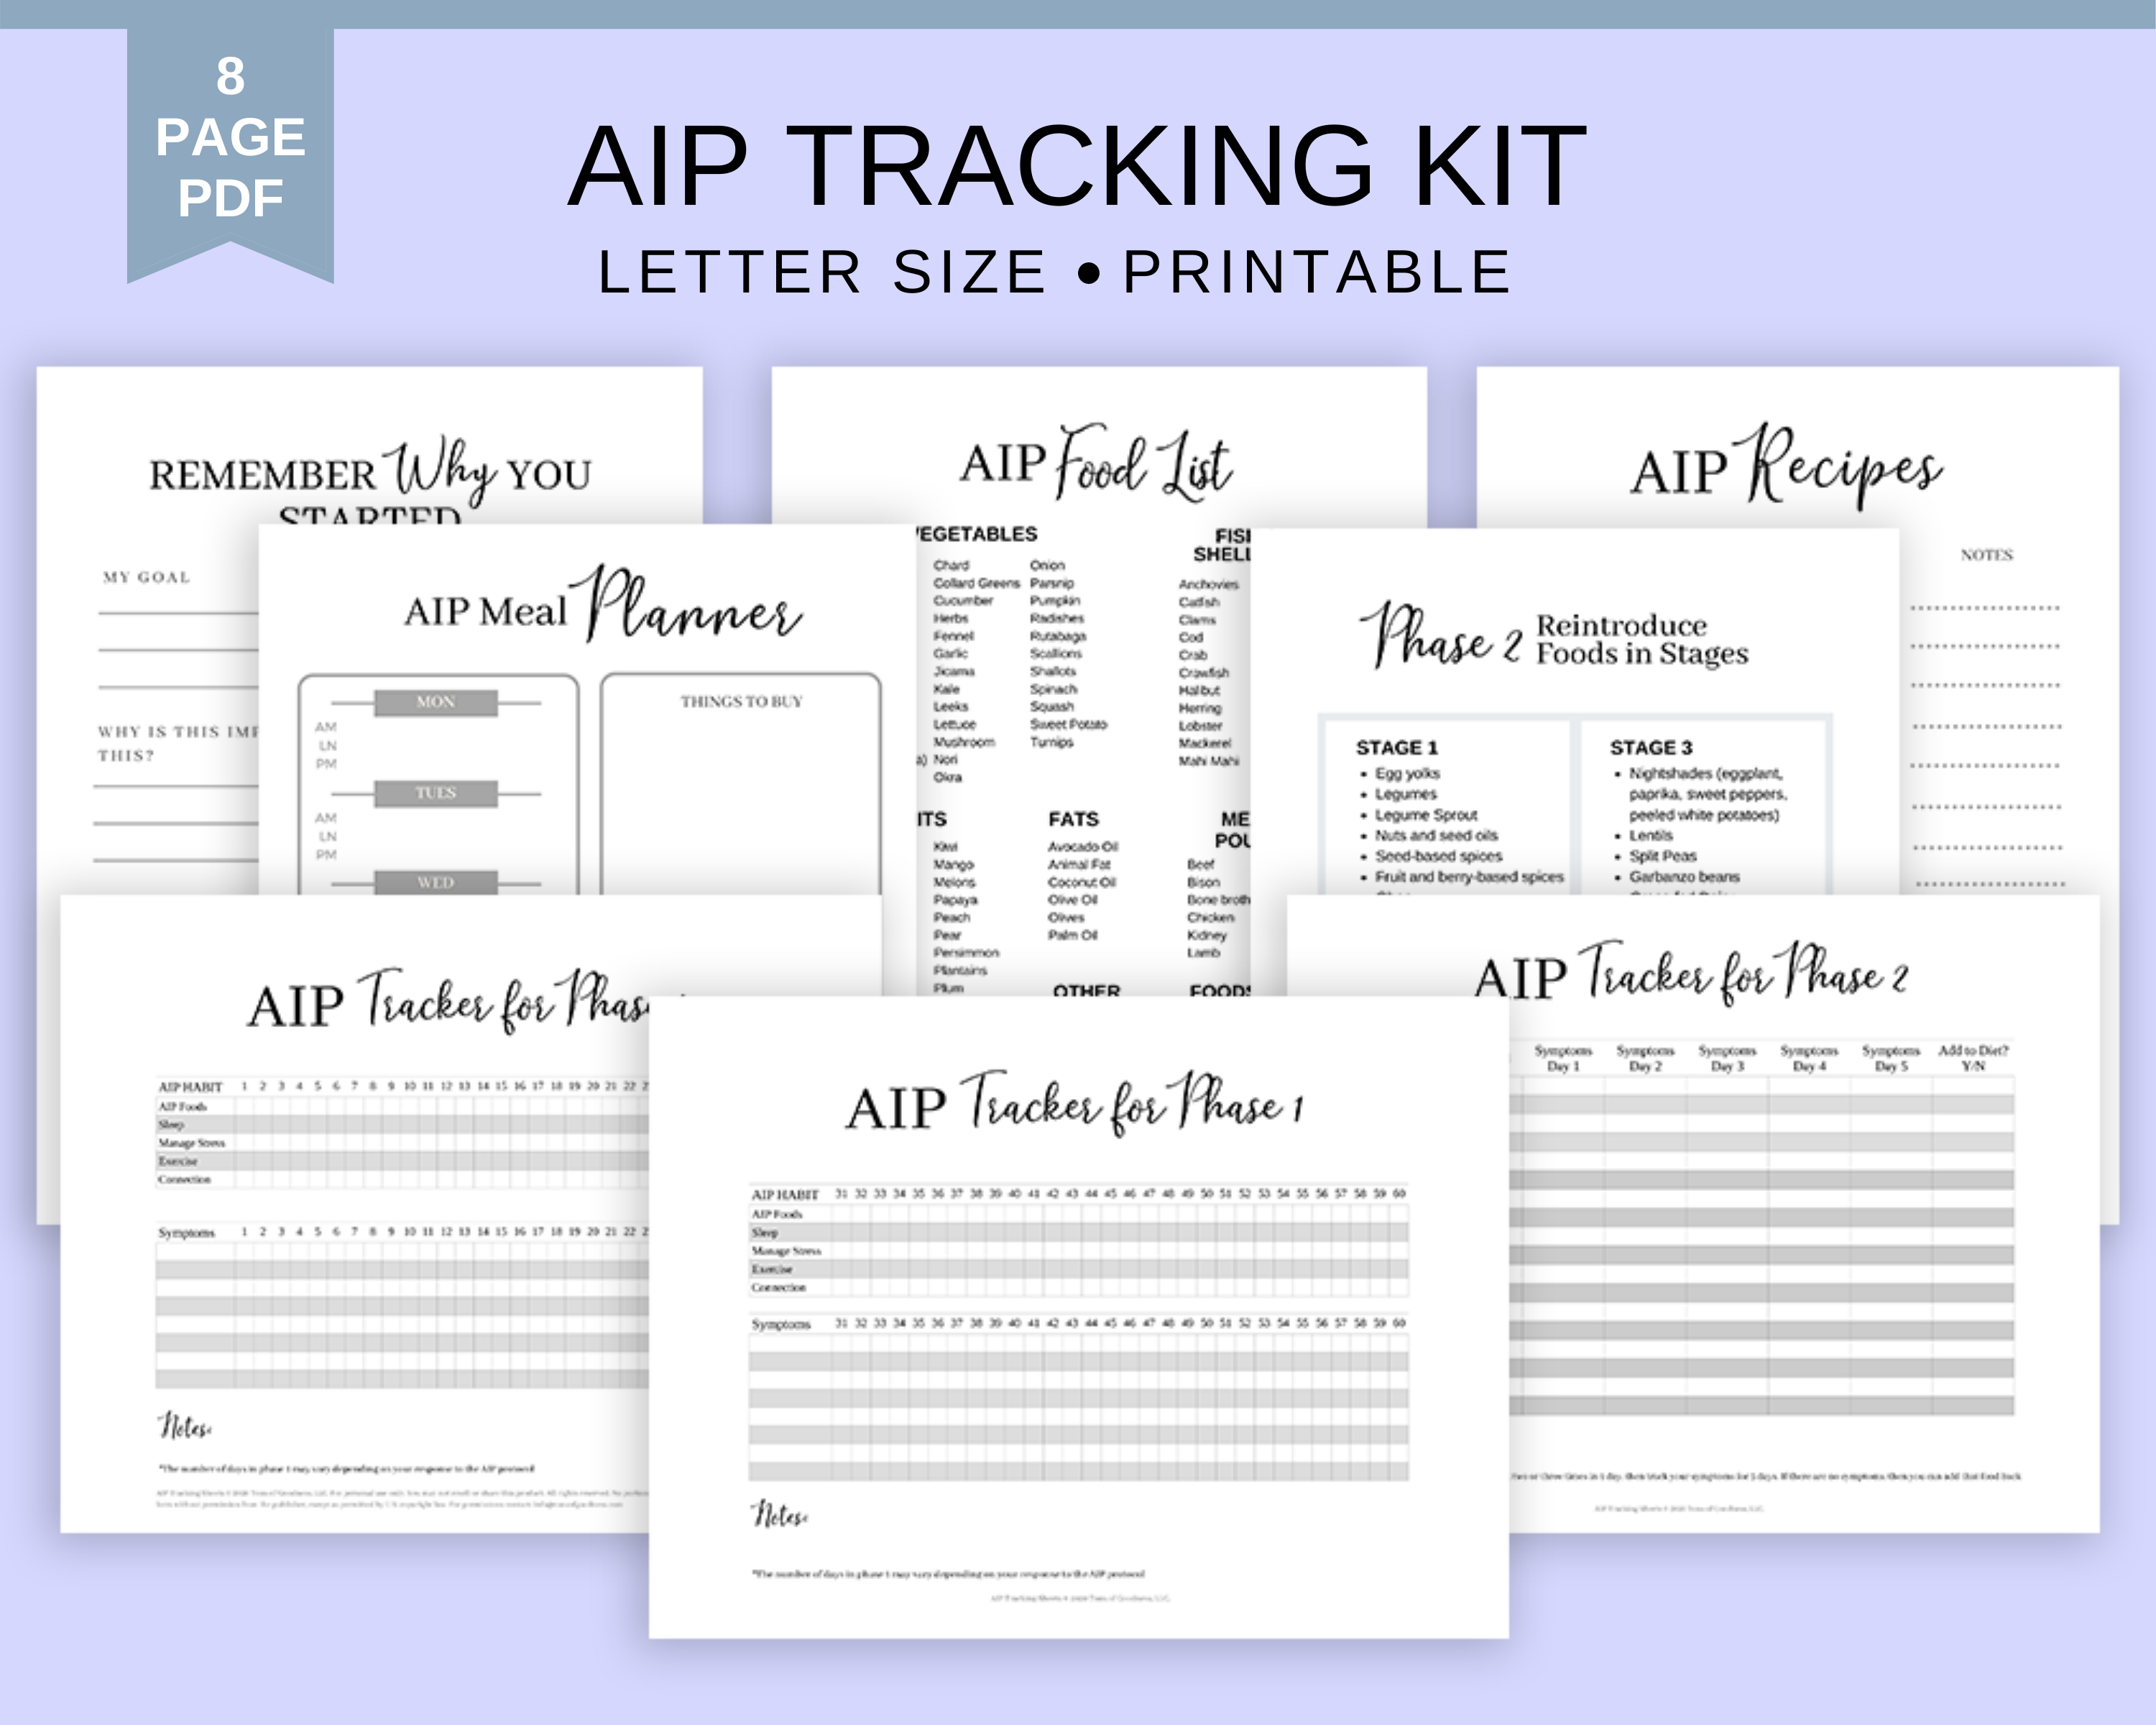 aip tracking kit